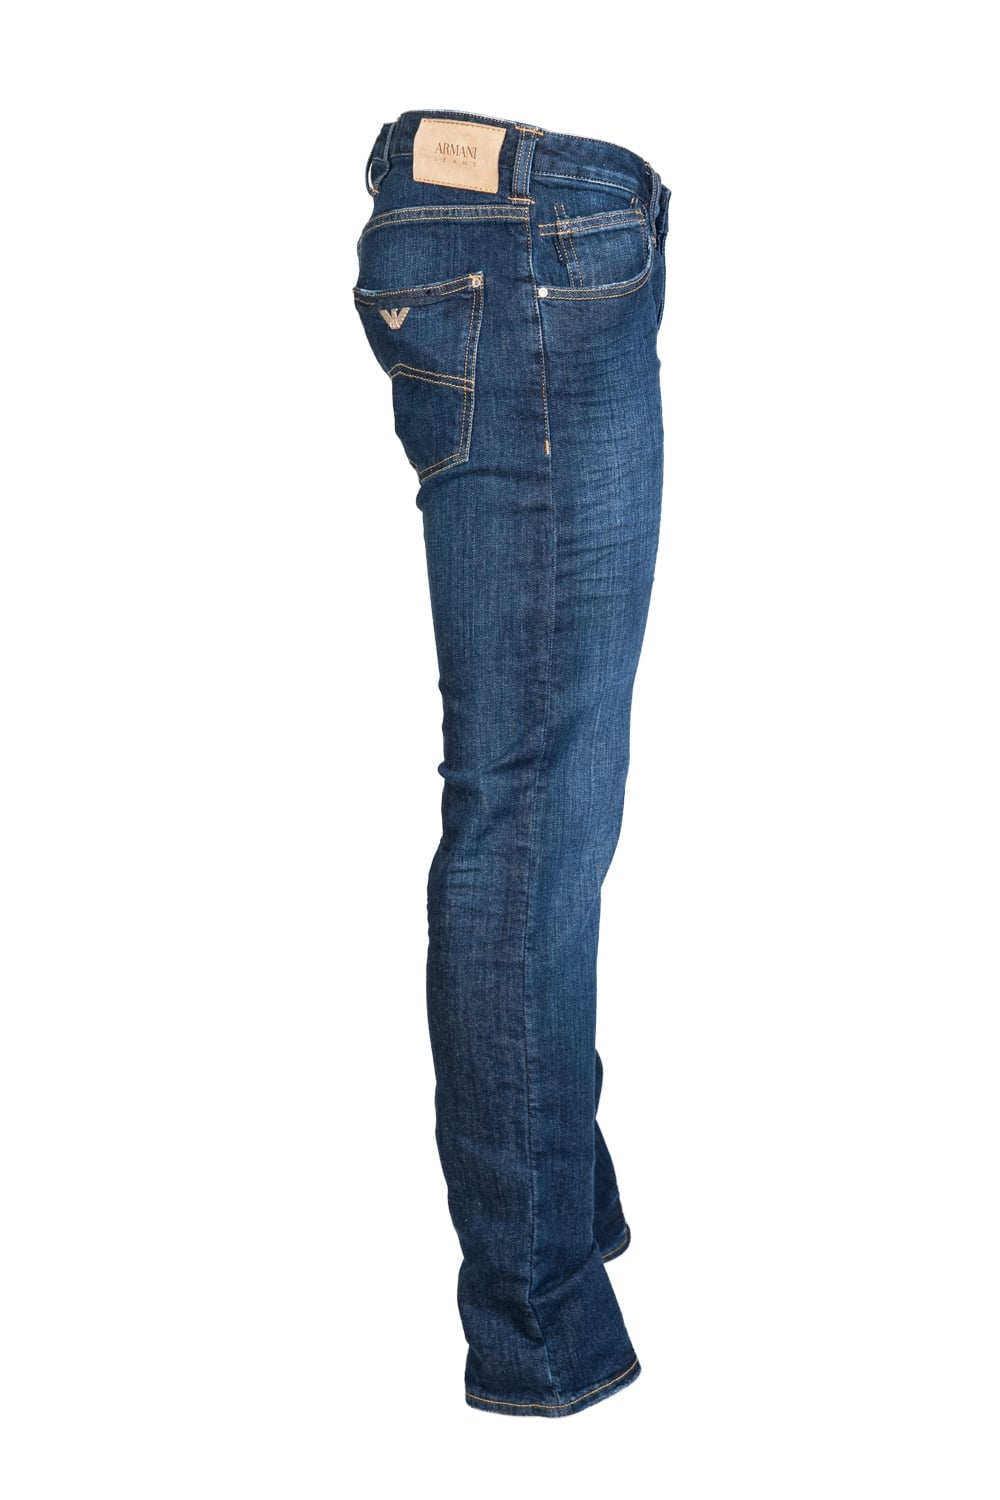 Armani Jeans J20 Extra Slim Fit Jeans 6Y6J20 6D31Z - Clothing from ... f47a4b4ed8ae